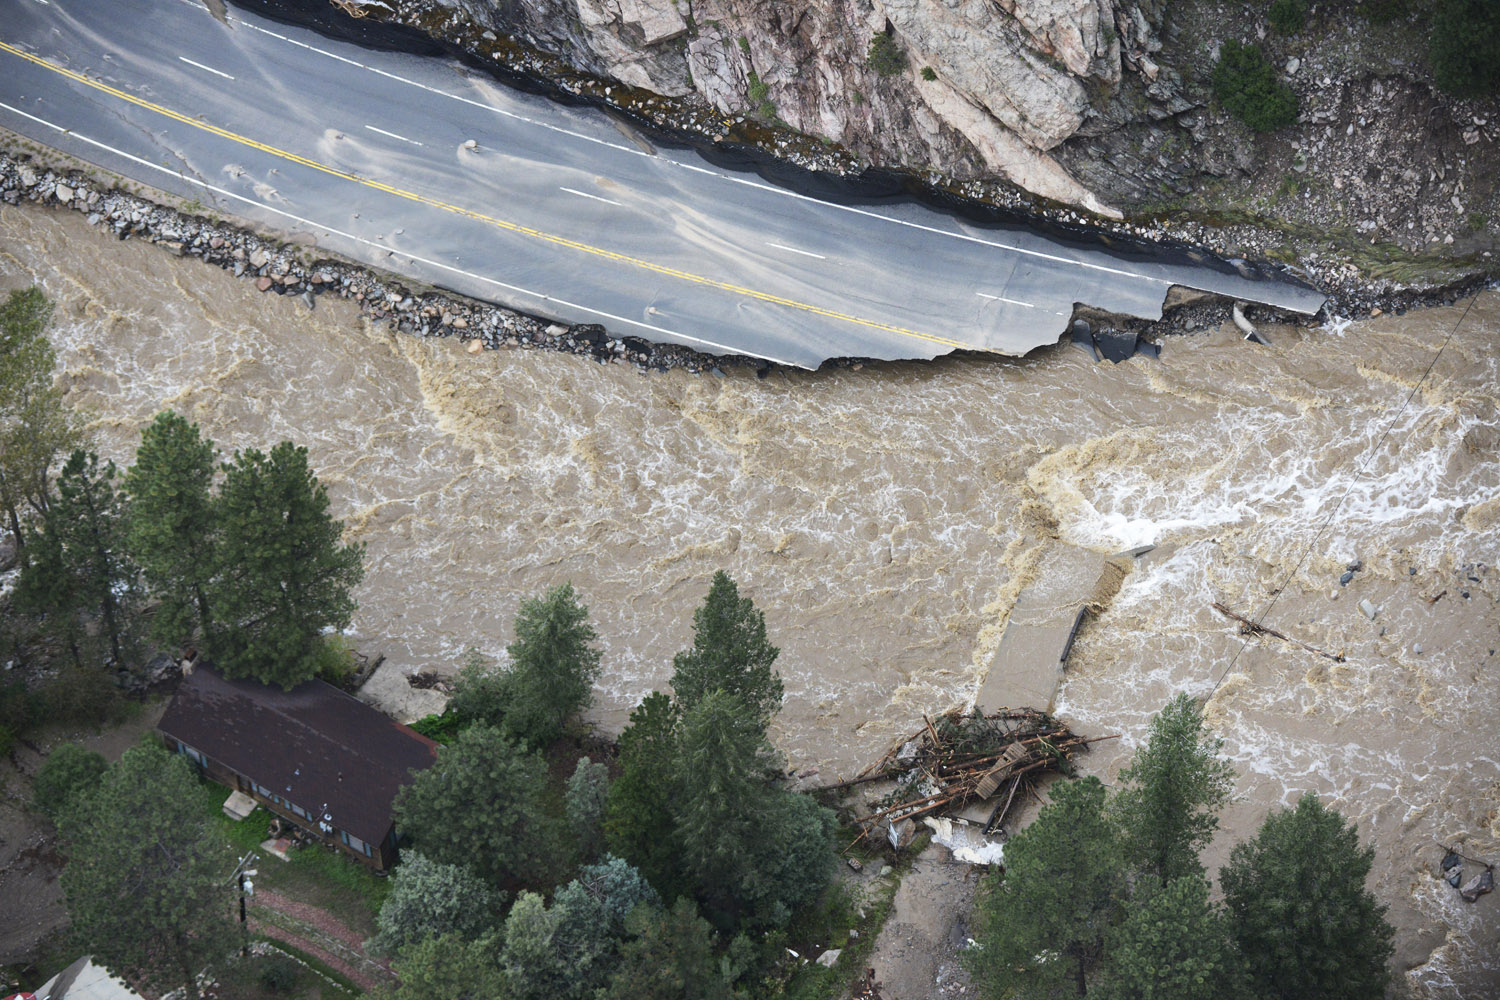 Sept. 14, 2013. A large section of Colorado U.S. 34 completely washed out from recent flooding of the Big Thompson River in the Big Thompson Canyon in Larimer County Colorado.